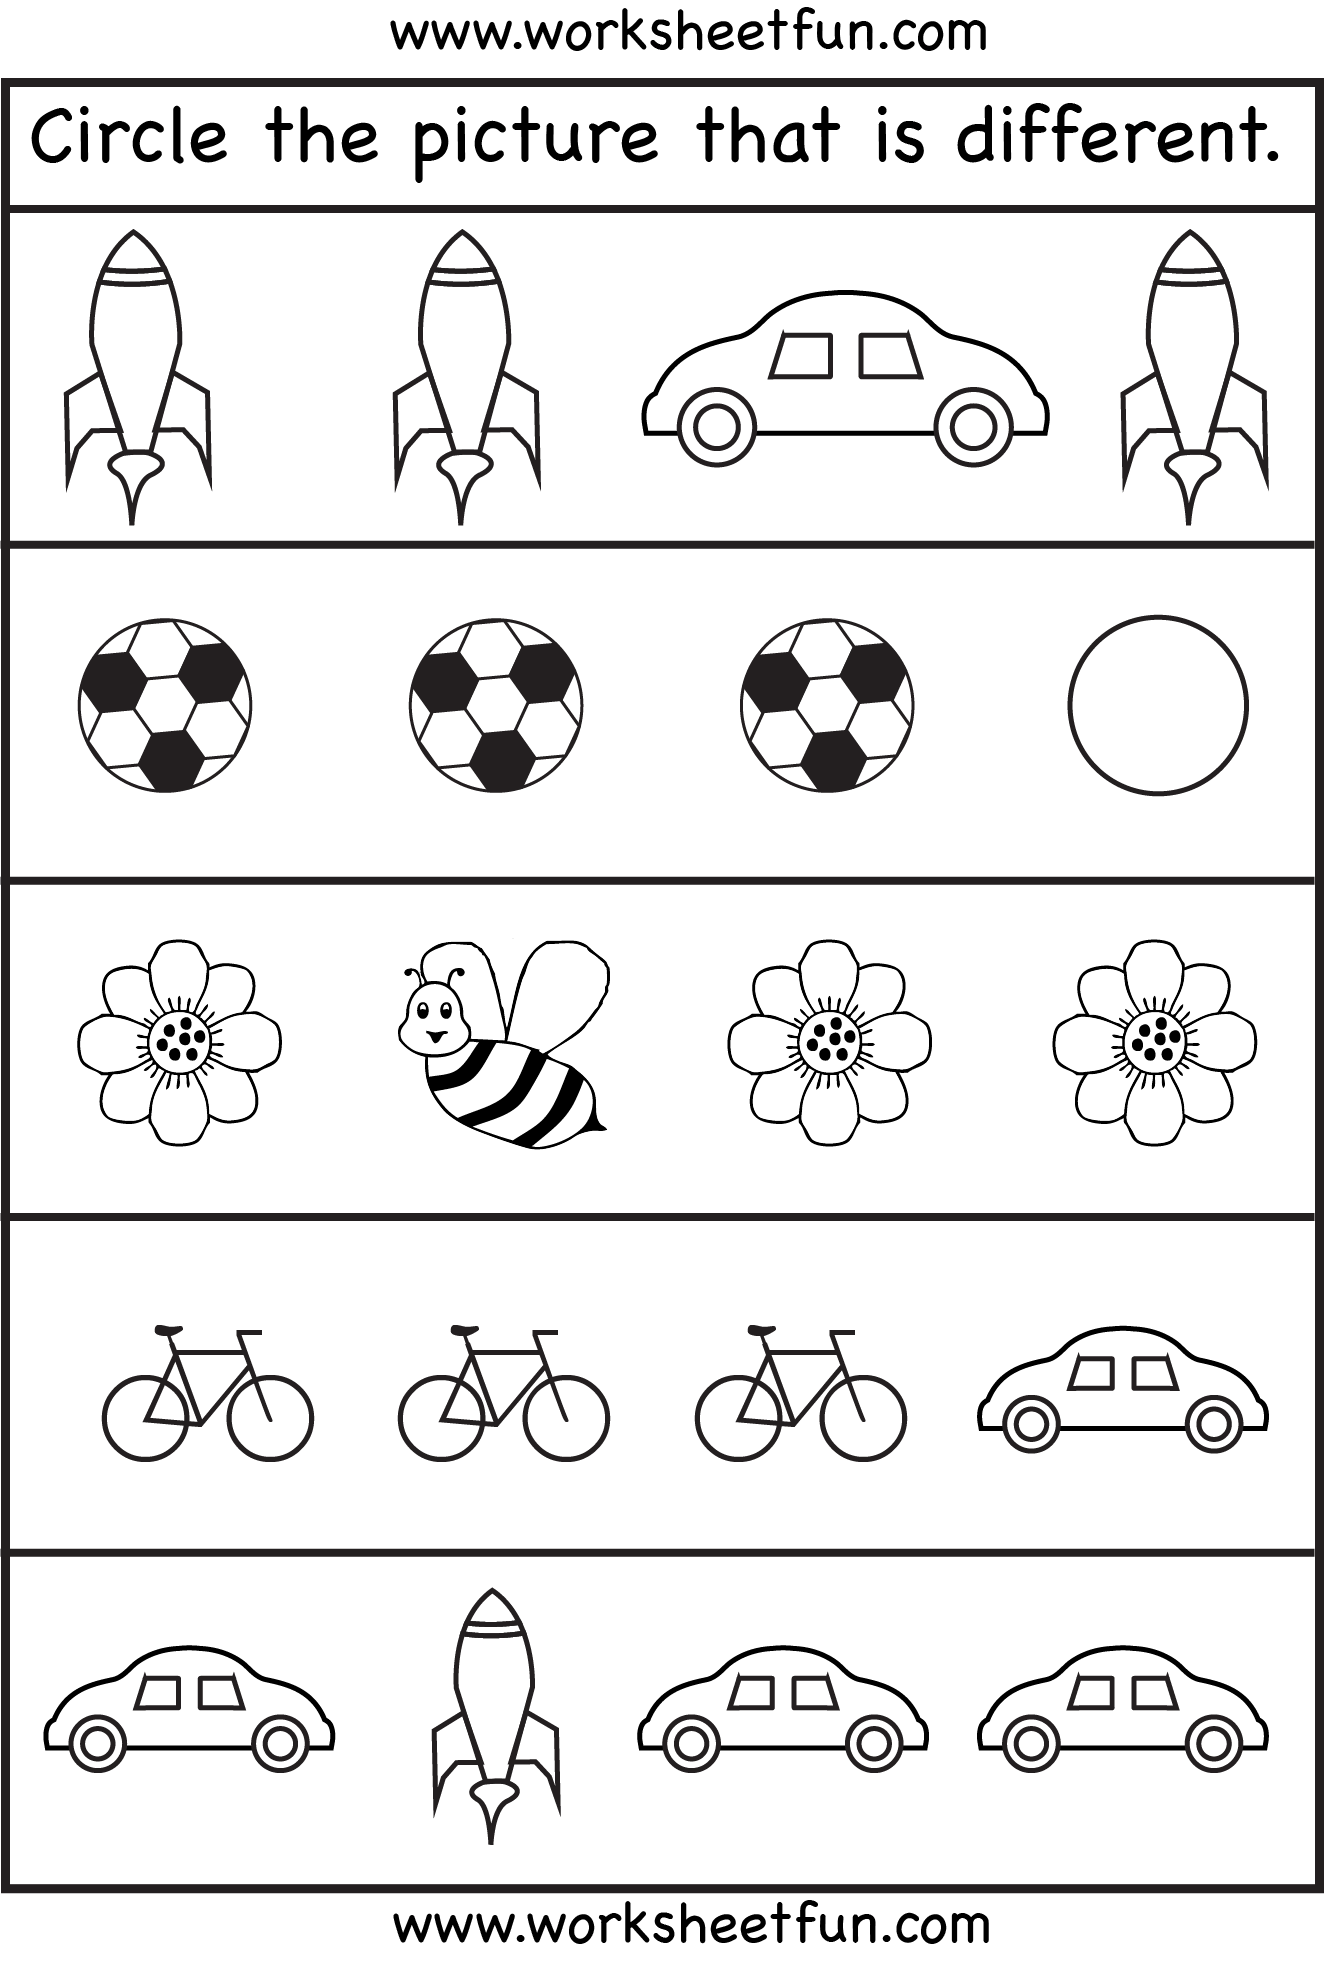 Circle The Picture That Is Different 1 Worksheet Free Printable Worksheets Worksheetfun